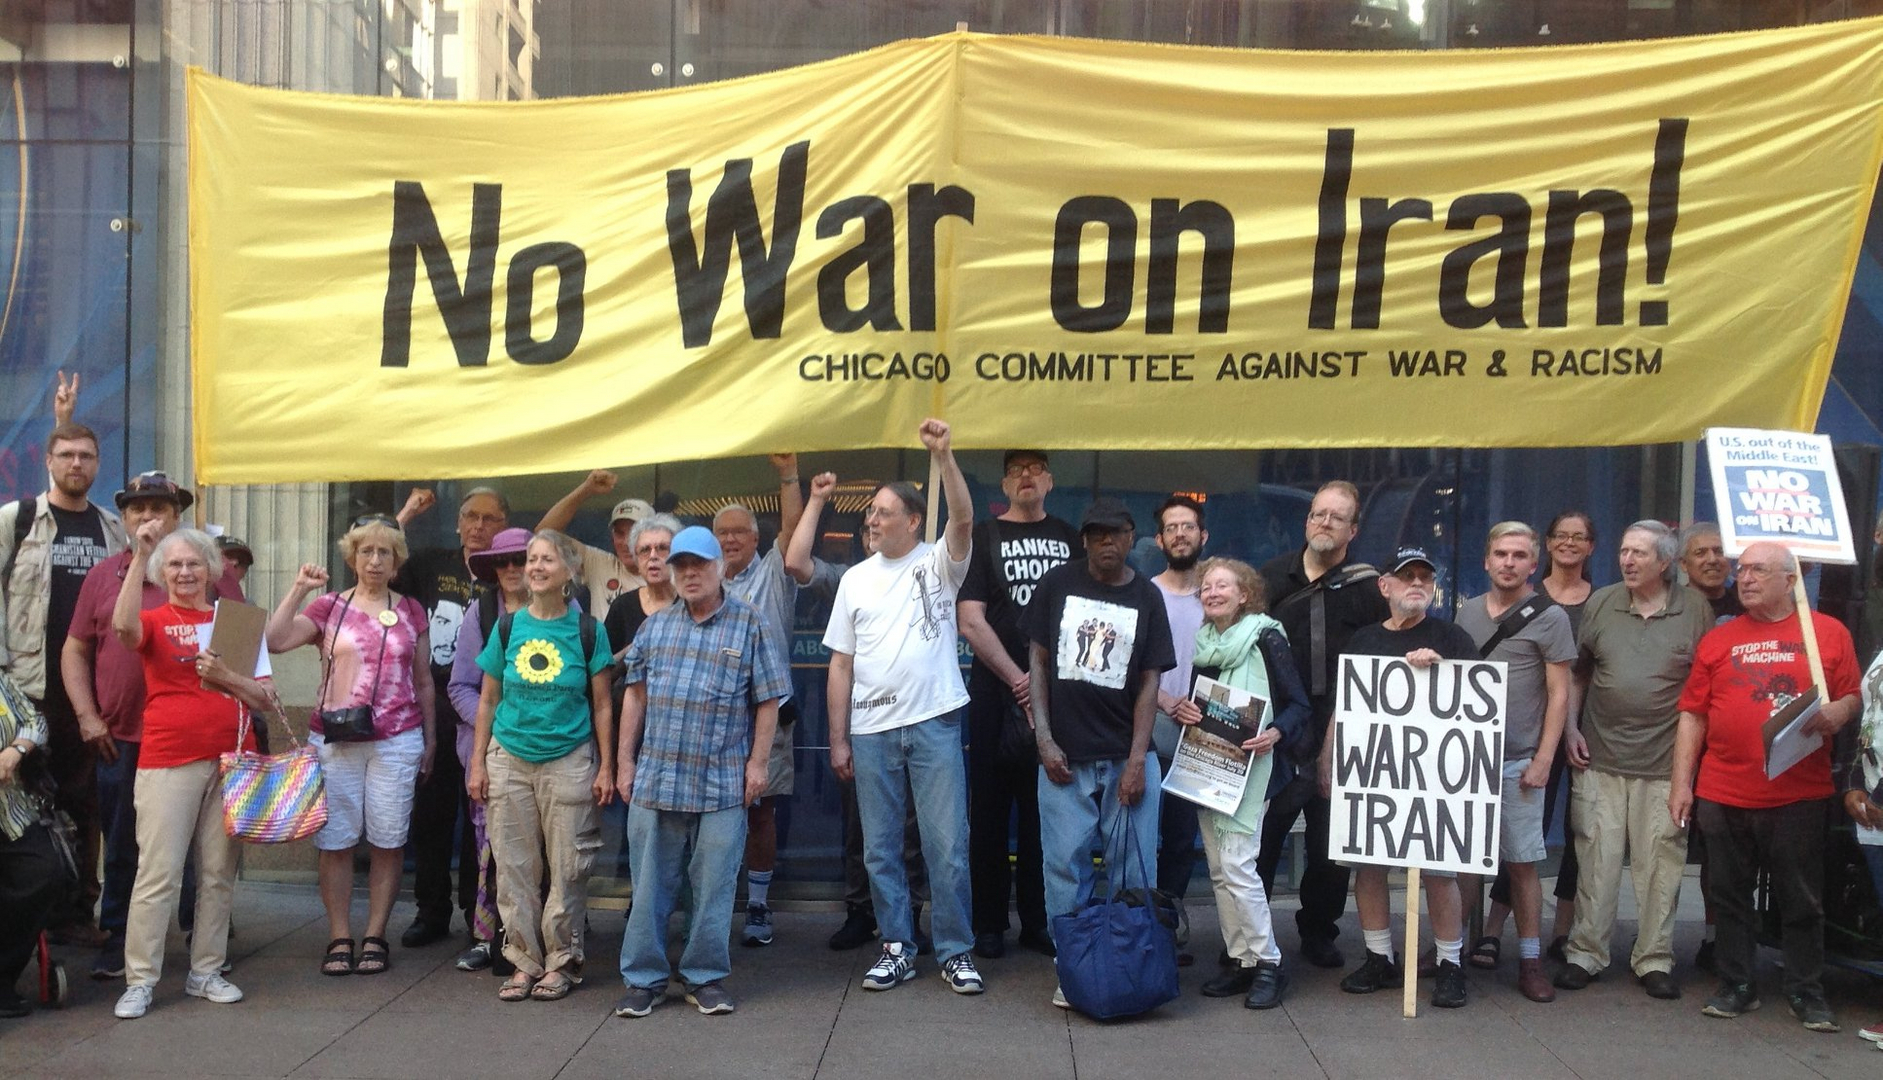 2016 21: Veterans For Peace Calls for an End to U.S. Wars in